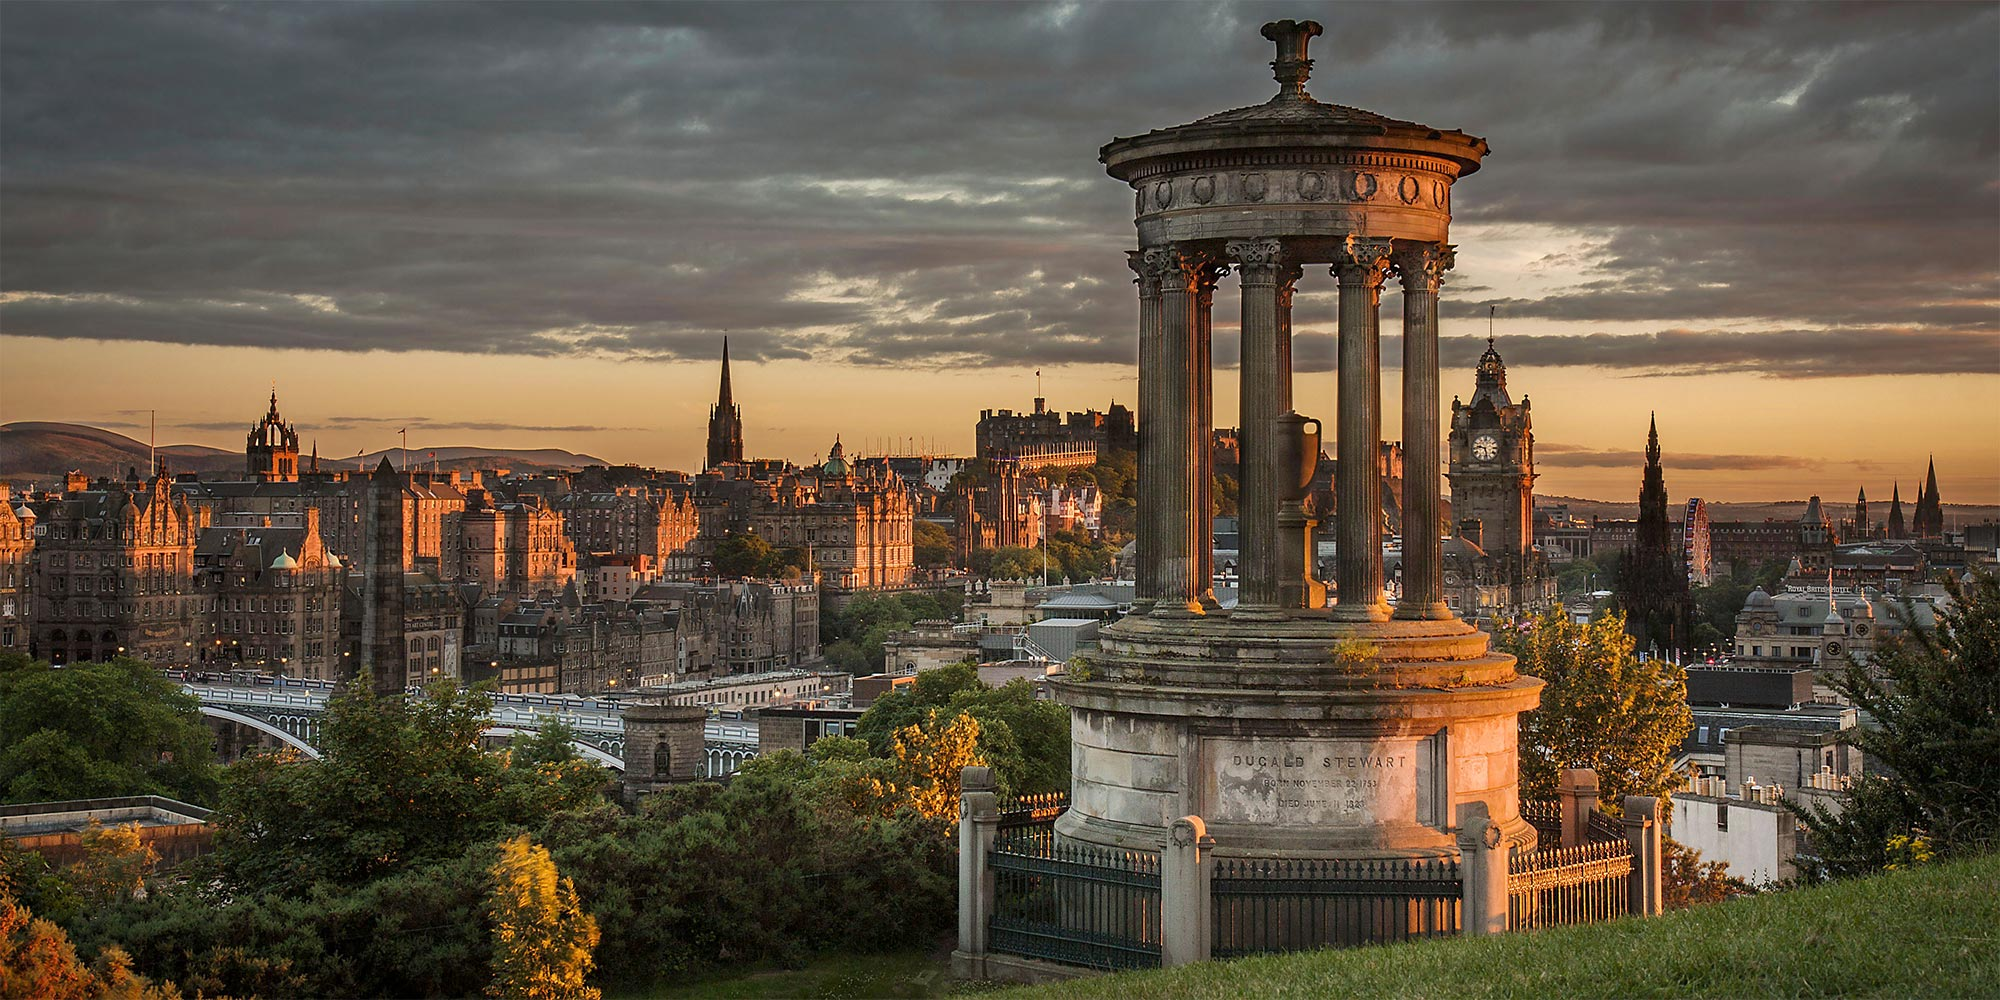 2 Day Edinburgh Tour with Edinburgh Castle & Bus Tour from London